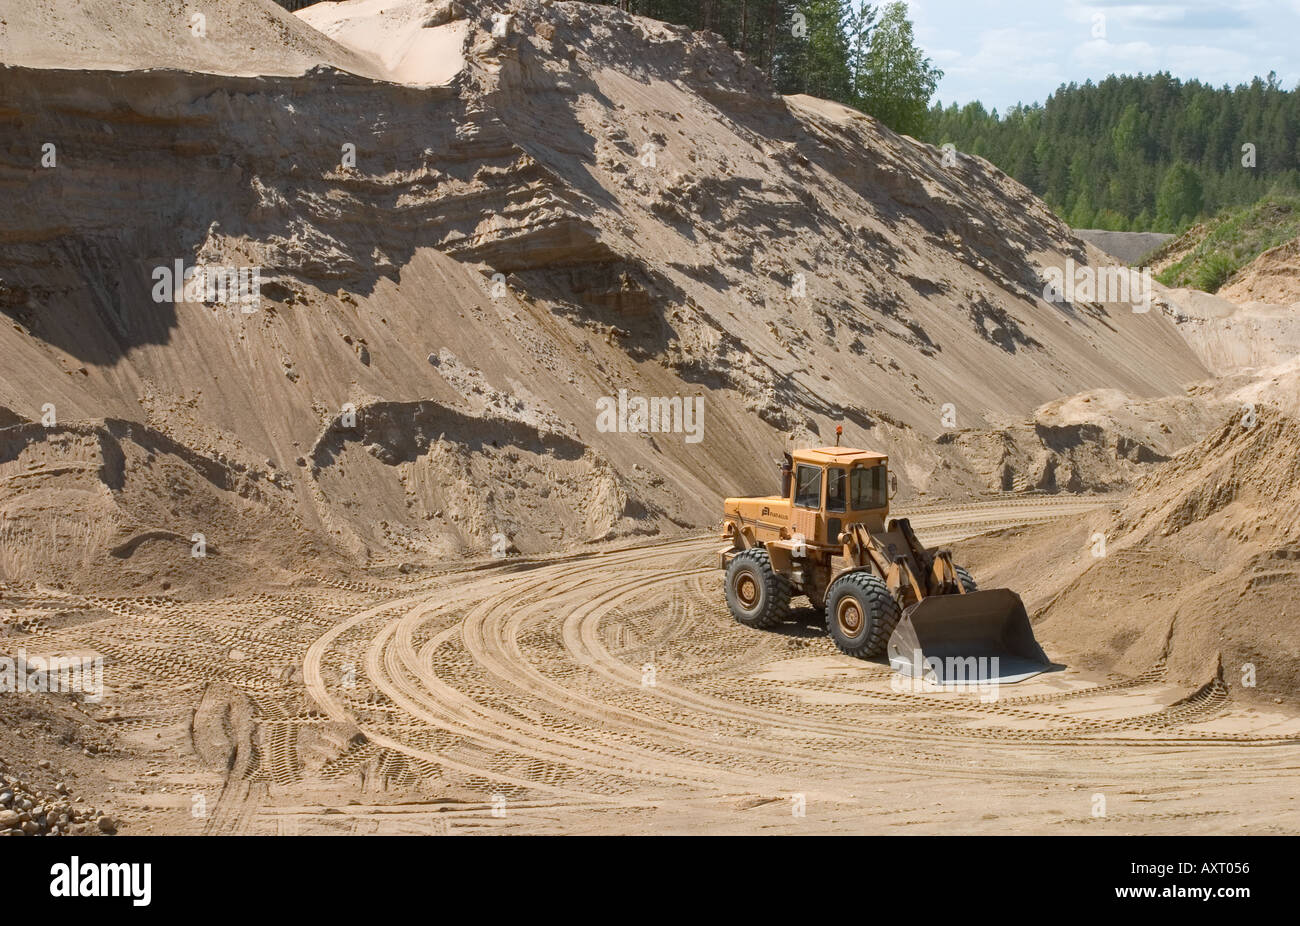 Gravel pit and front loader . Digging sand and gravel from a glacial esker , Finland - Stock Image